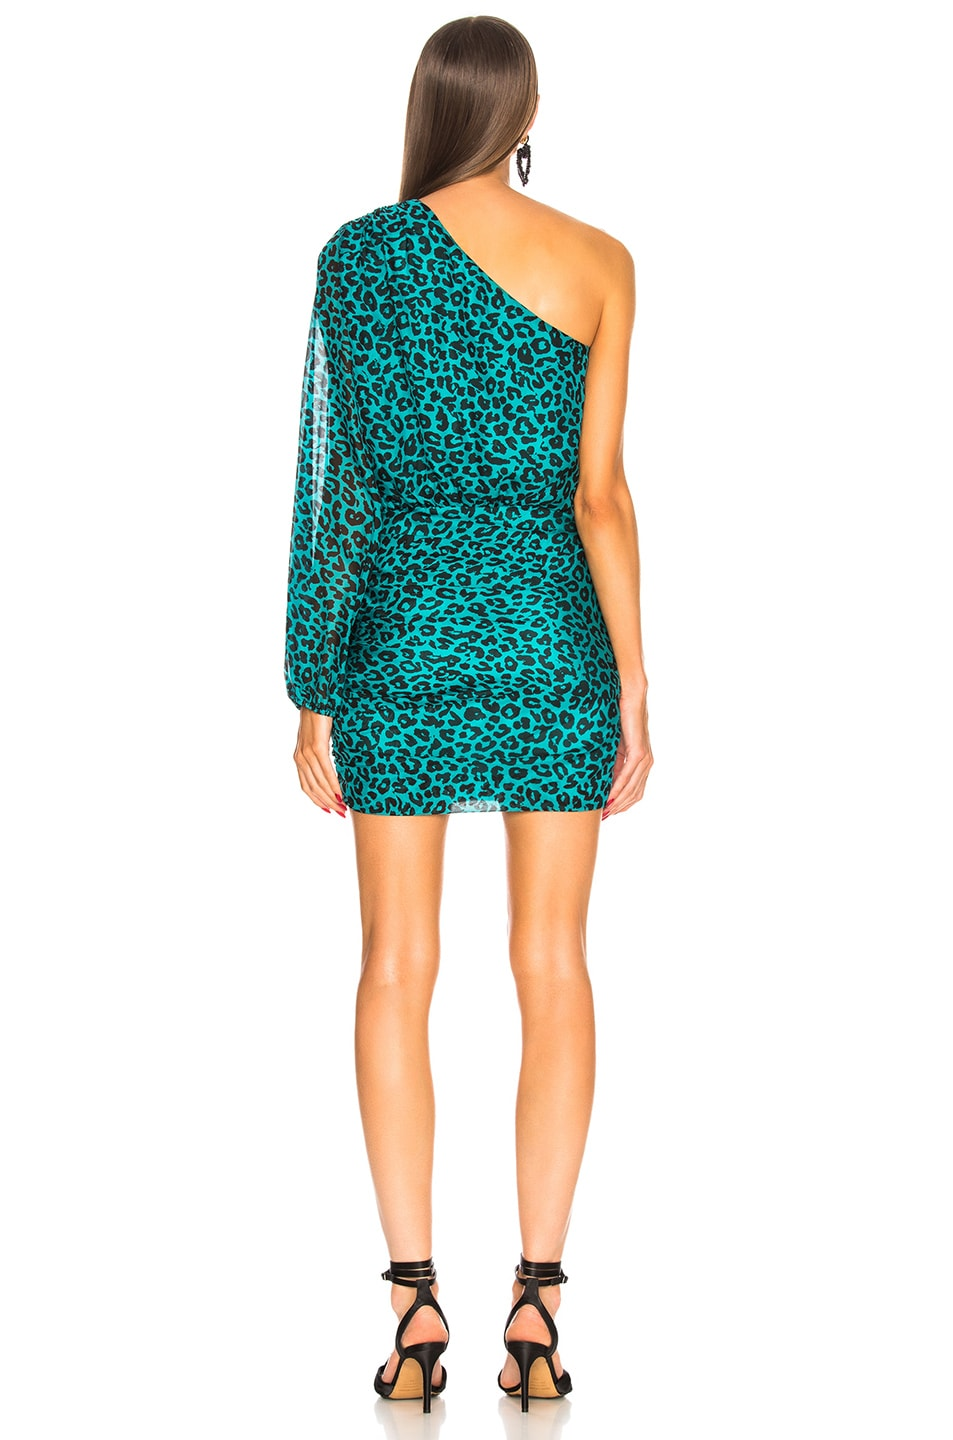 Image 4 of Michelle Mason One Sleeve Mini Dress in Teal Leopard